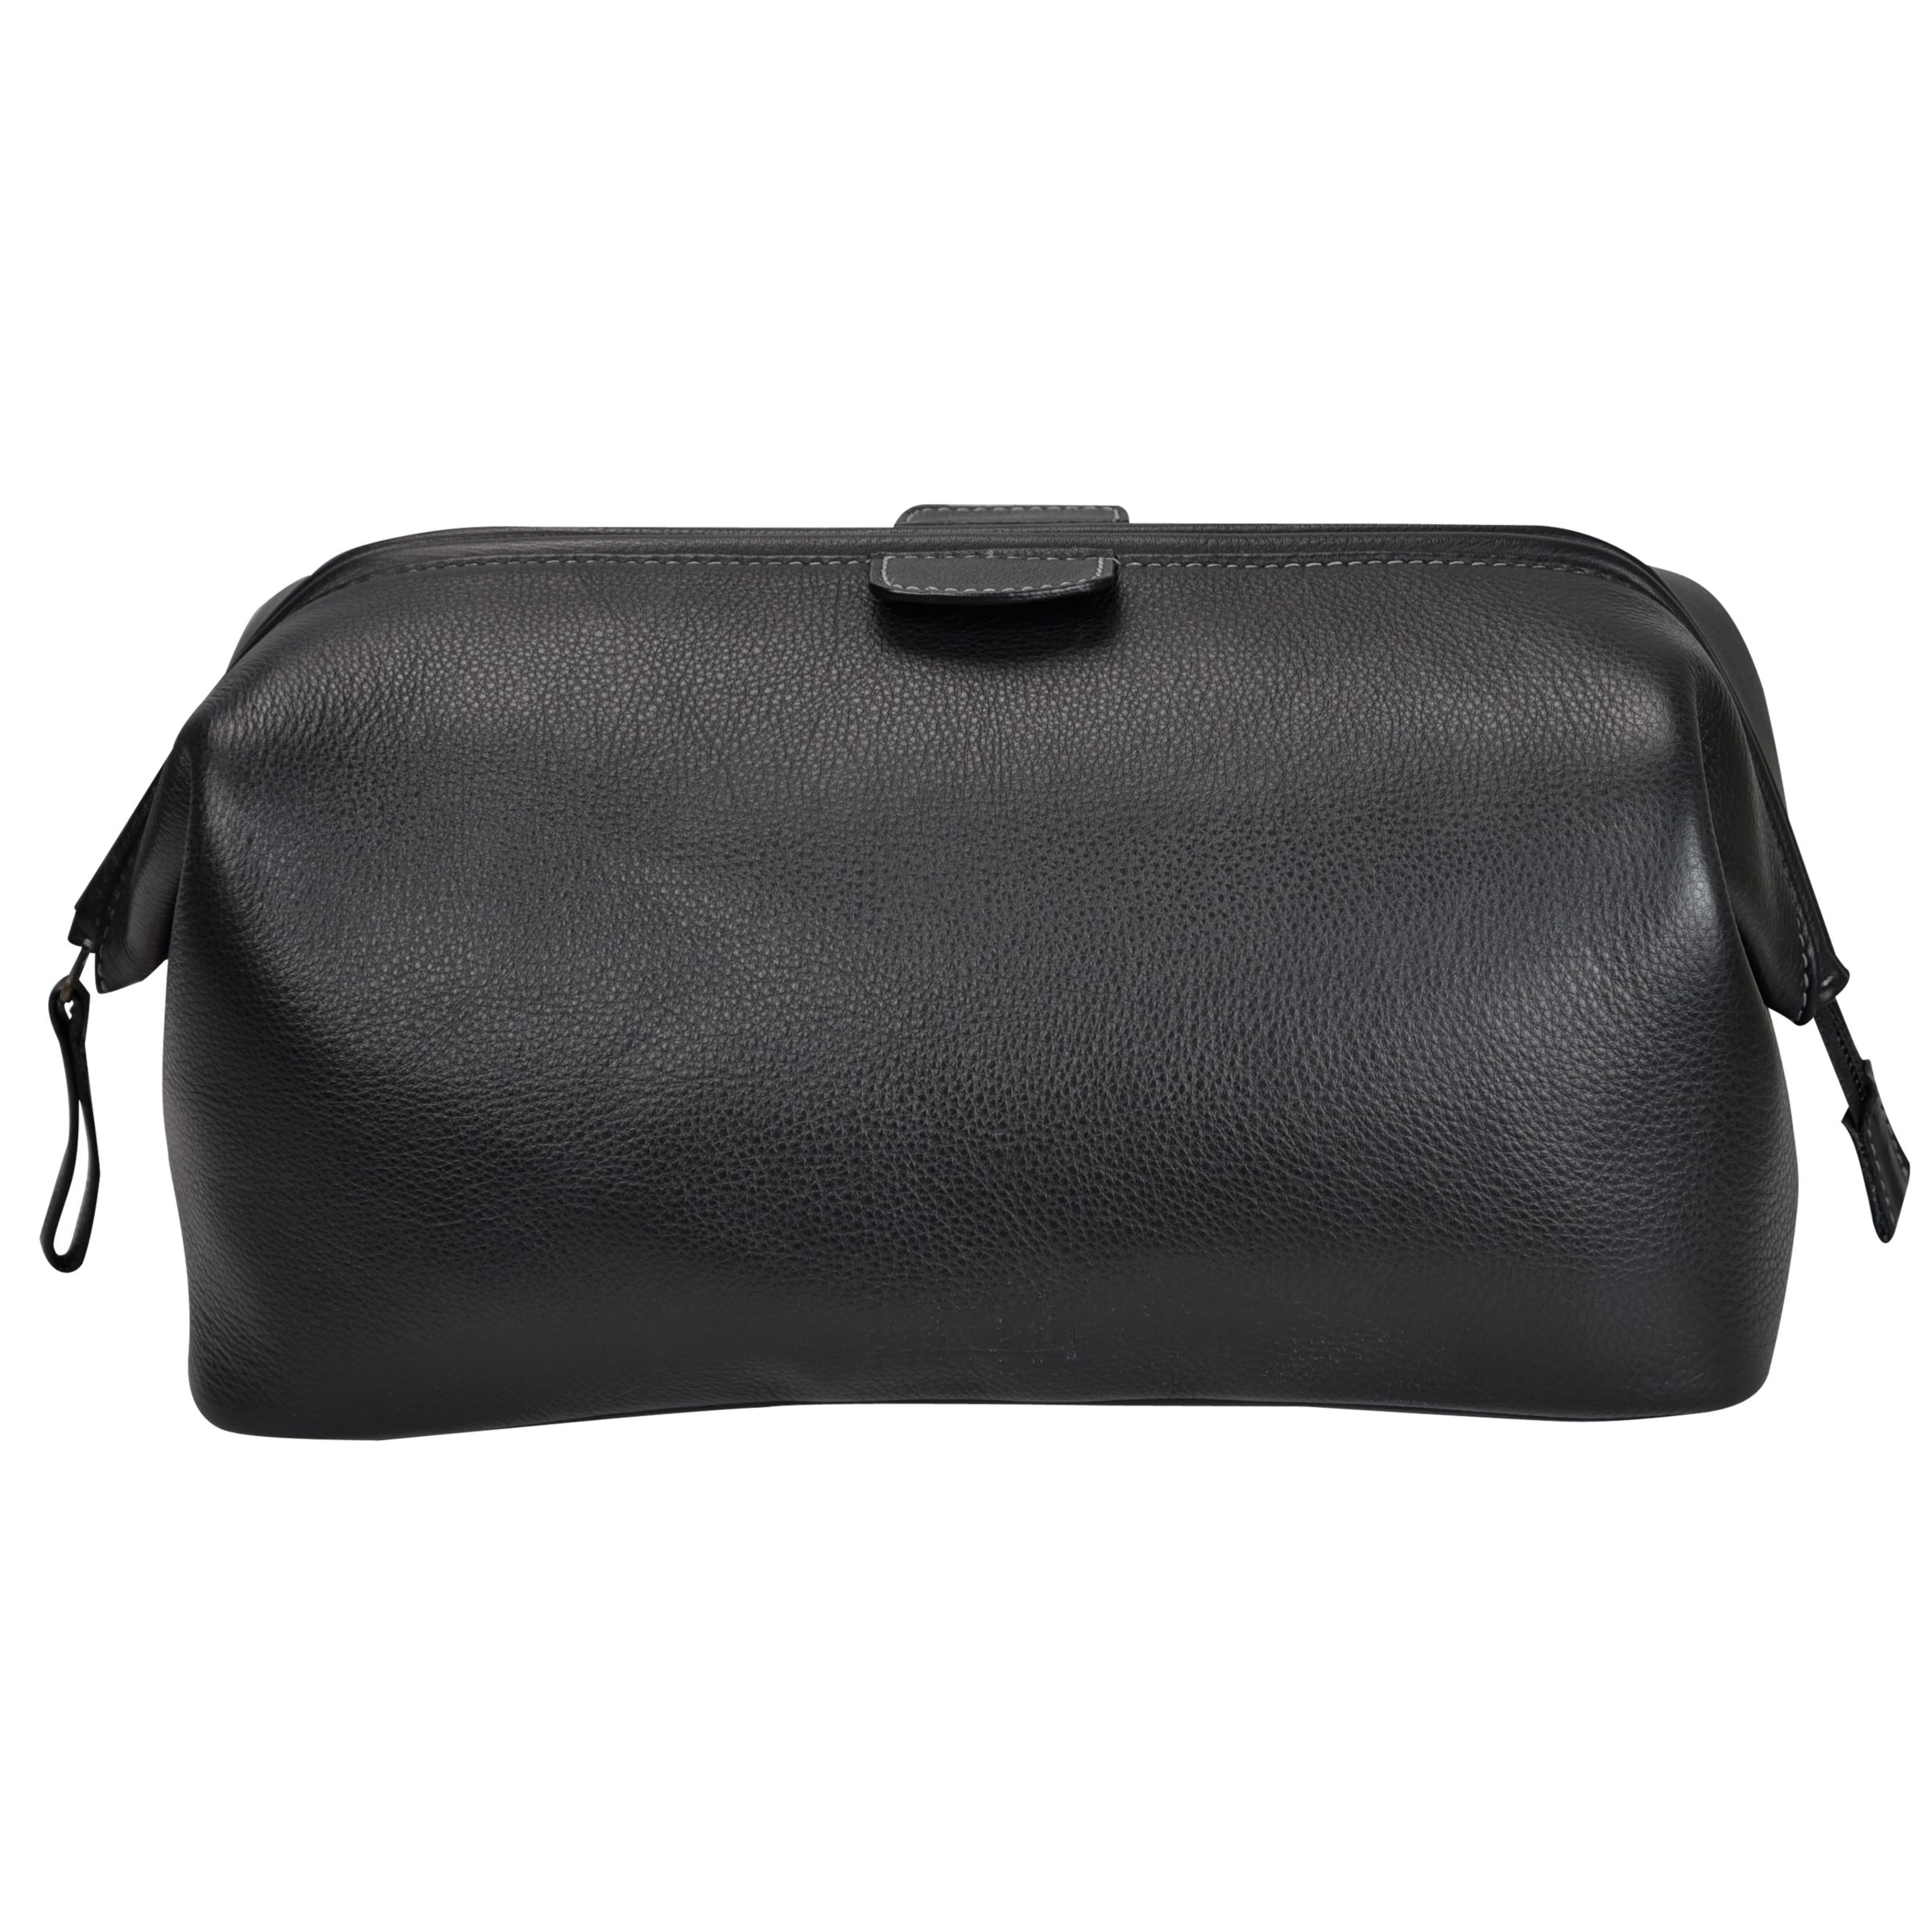 Dulwich Designs Dulwich Designs Heritage Leather Washbag